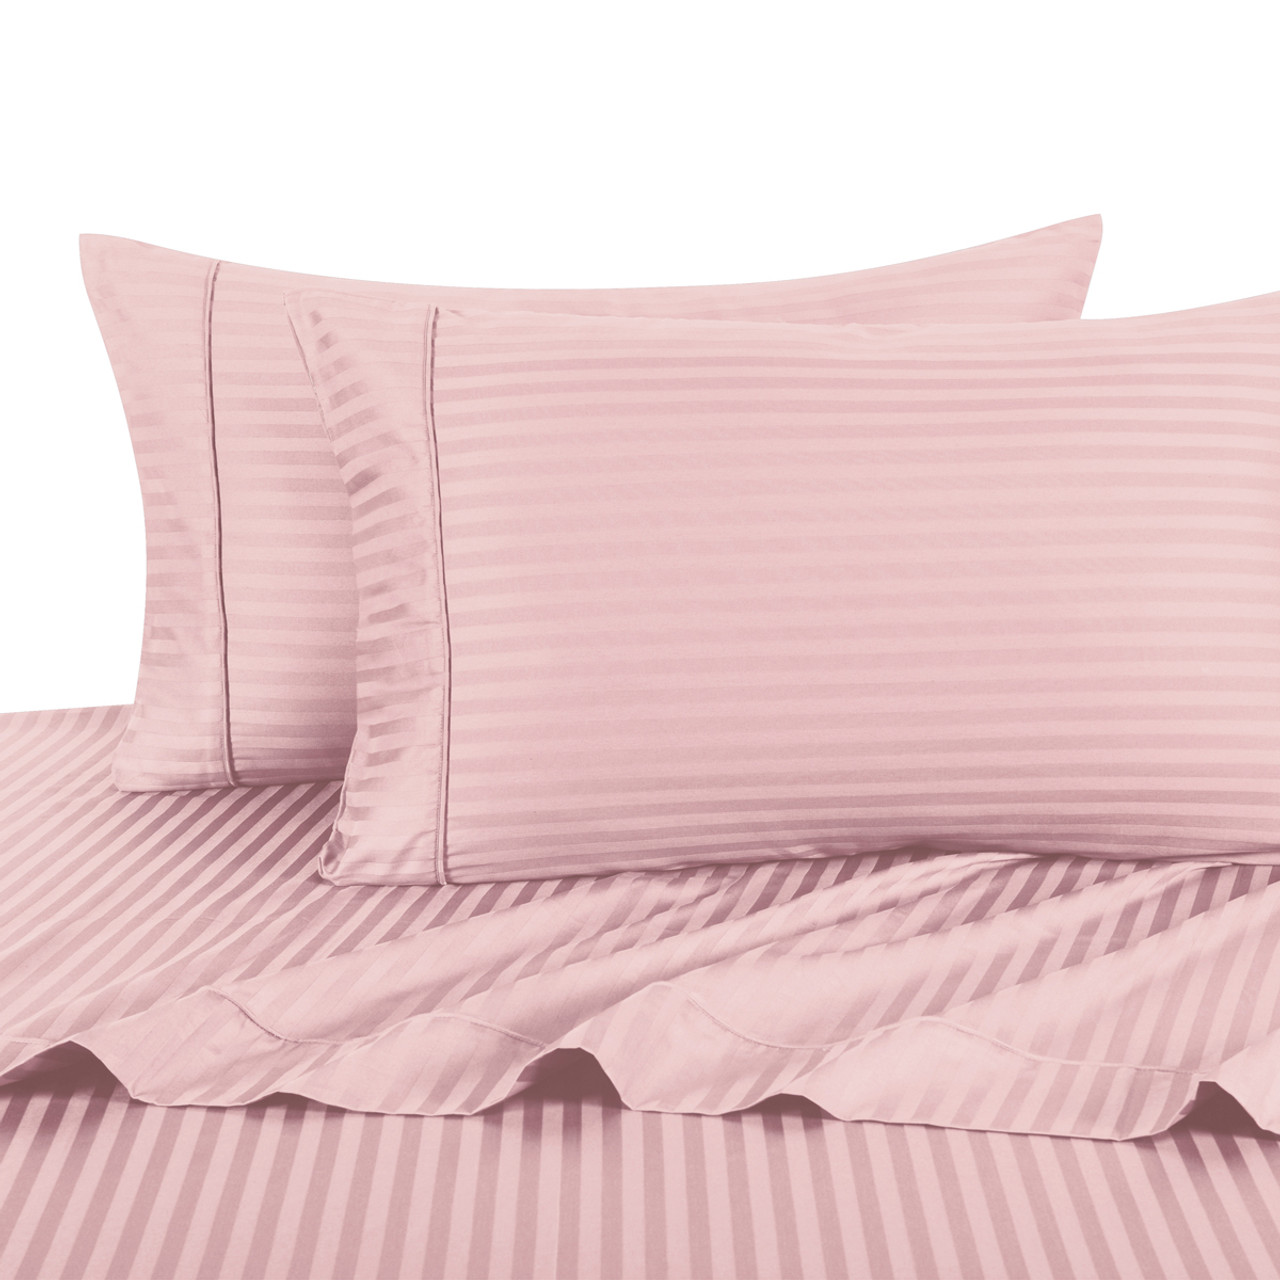 ... Blush Twin Extra Long Sheets 100% Cotton 500 Thread Count Damask  Striped ...